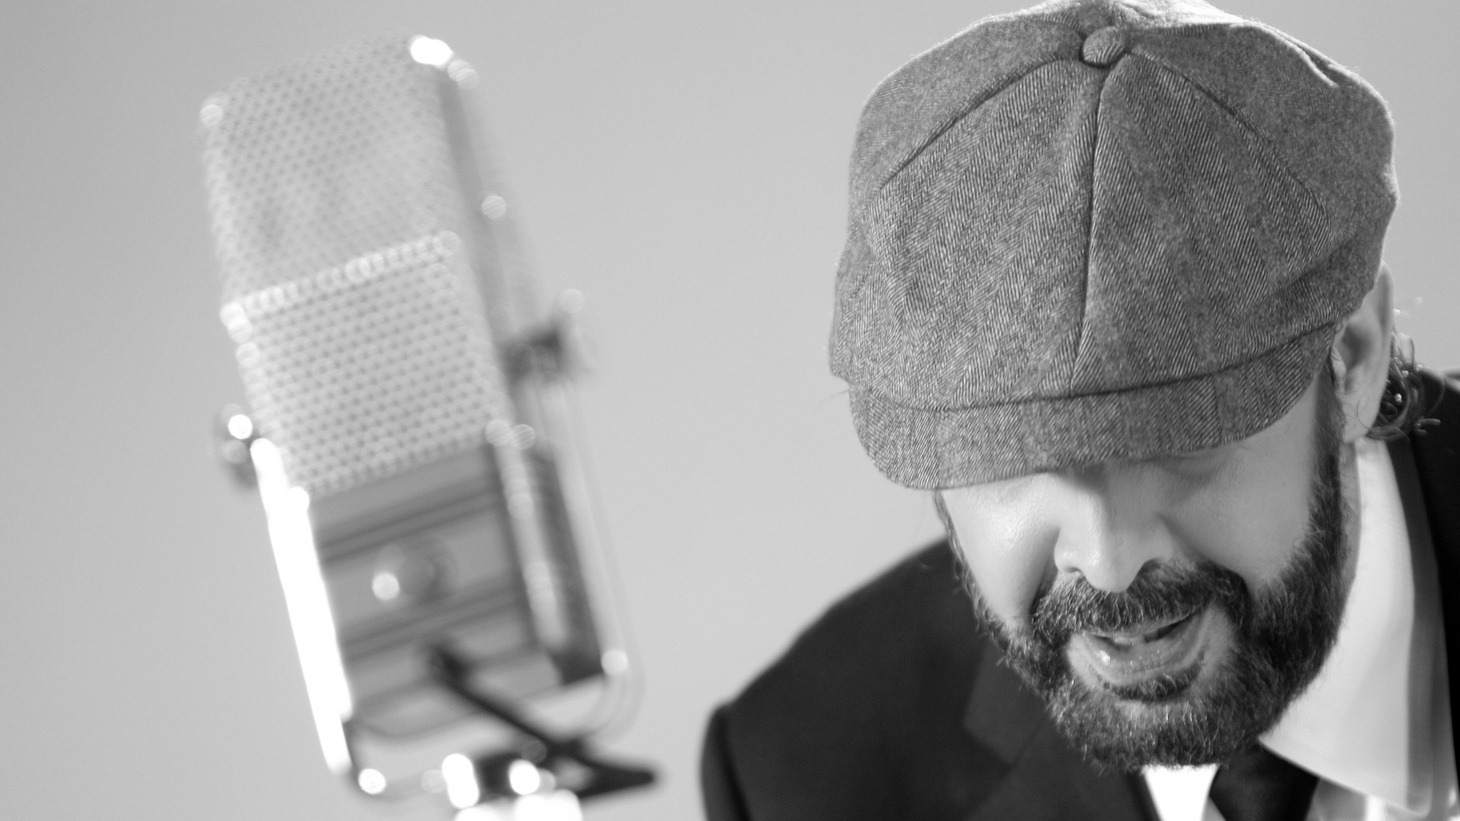 Juan Luis Guerra is a singer from the Dominican Republic whose fluid Caribbean rhythms have won him multiple Grammy Awards. His new CD pays tribute to the Almighty...